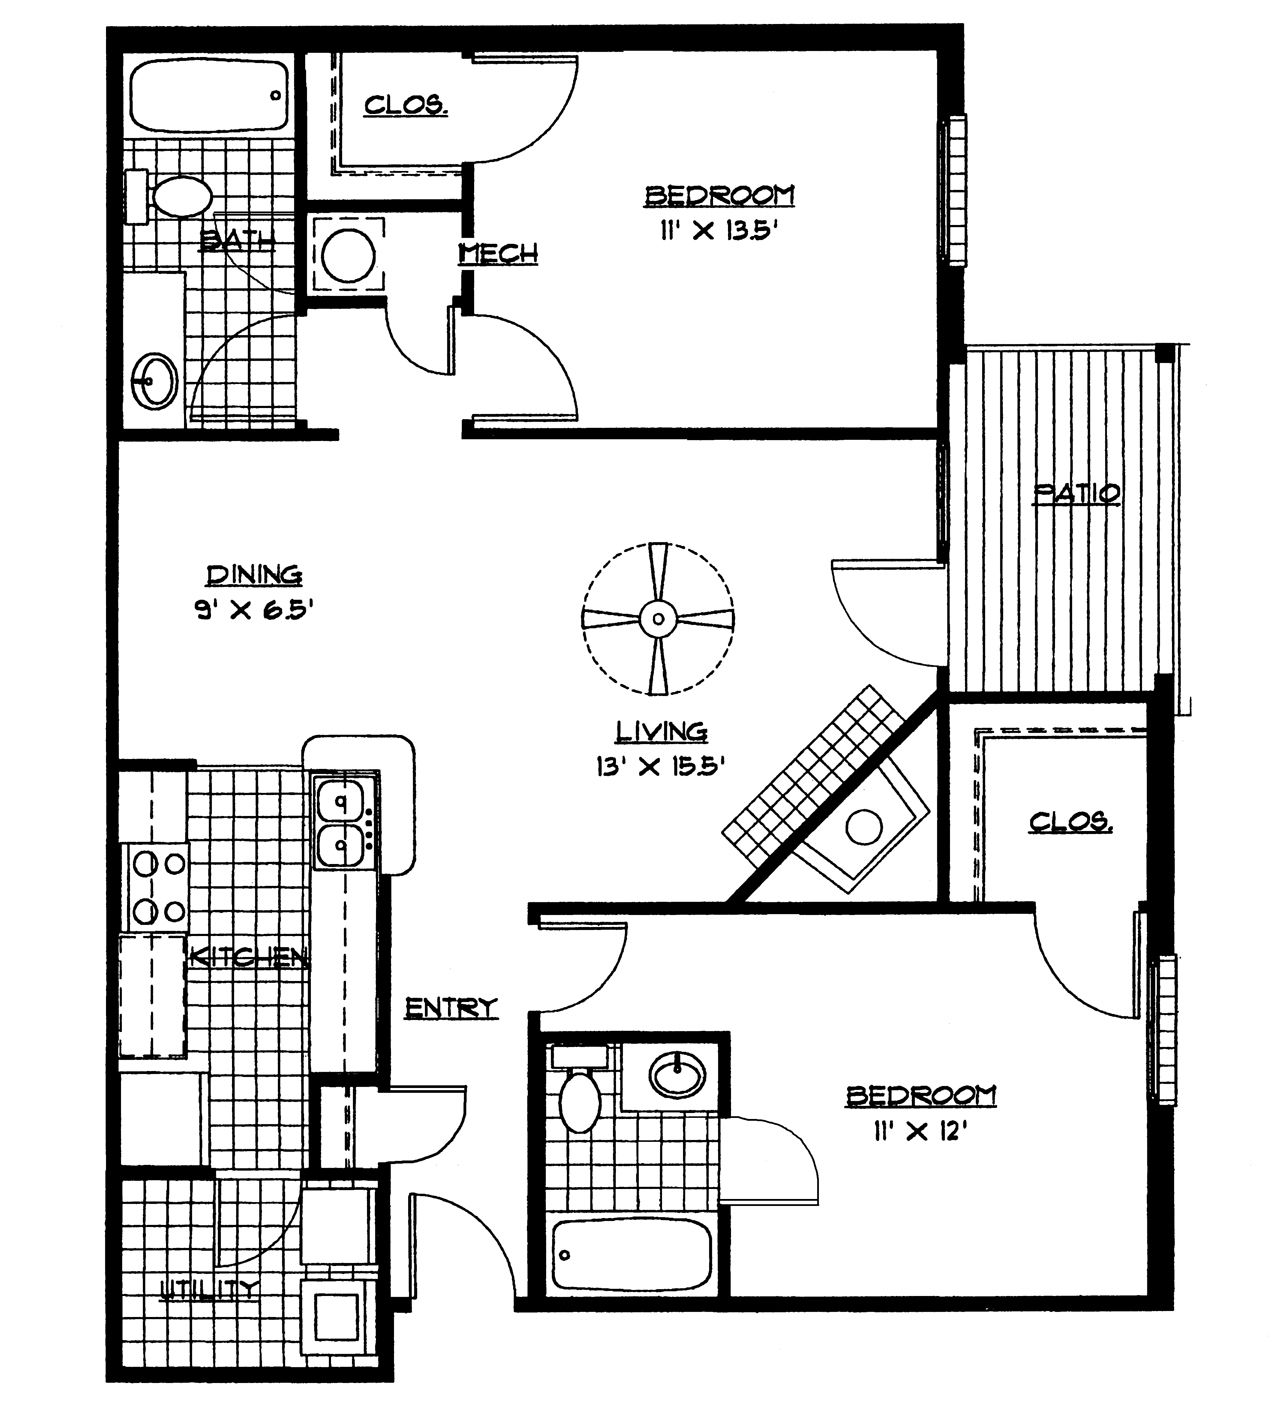 Small house floor plans 2 bedrooms bedroom floor plan for House plans free download